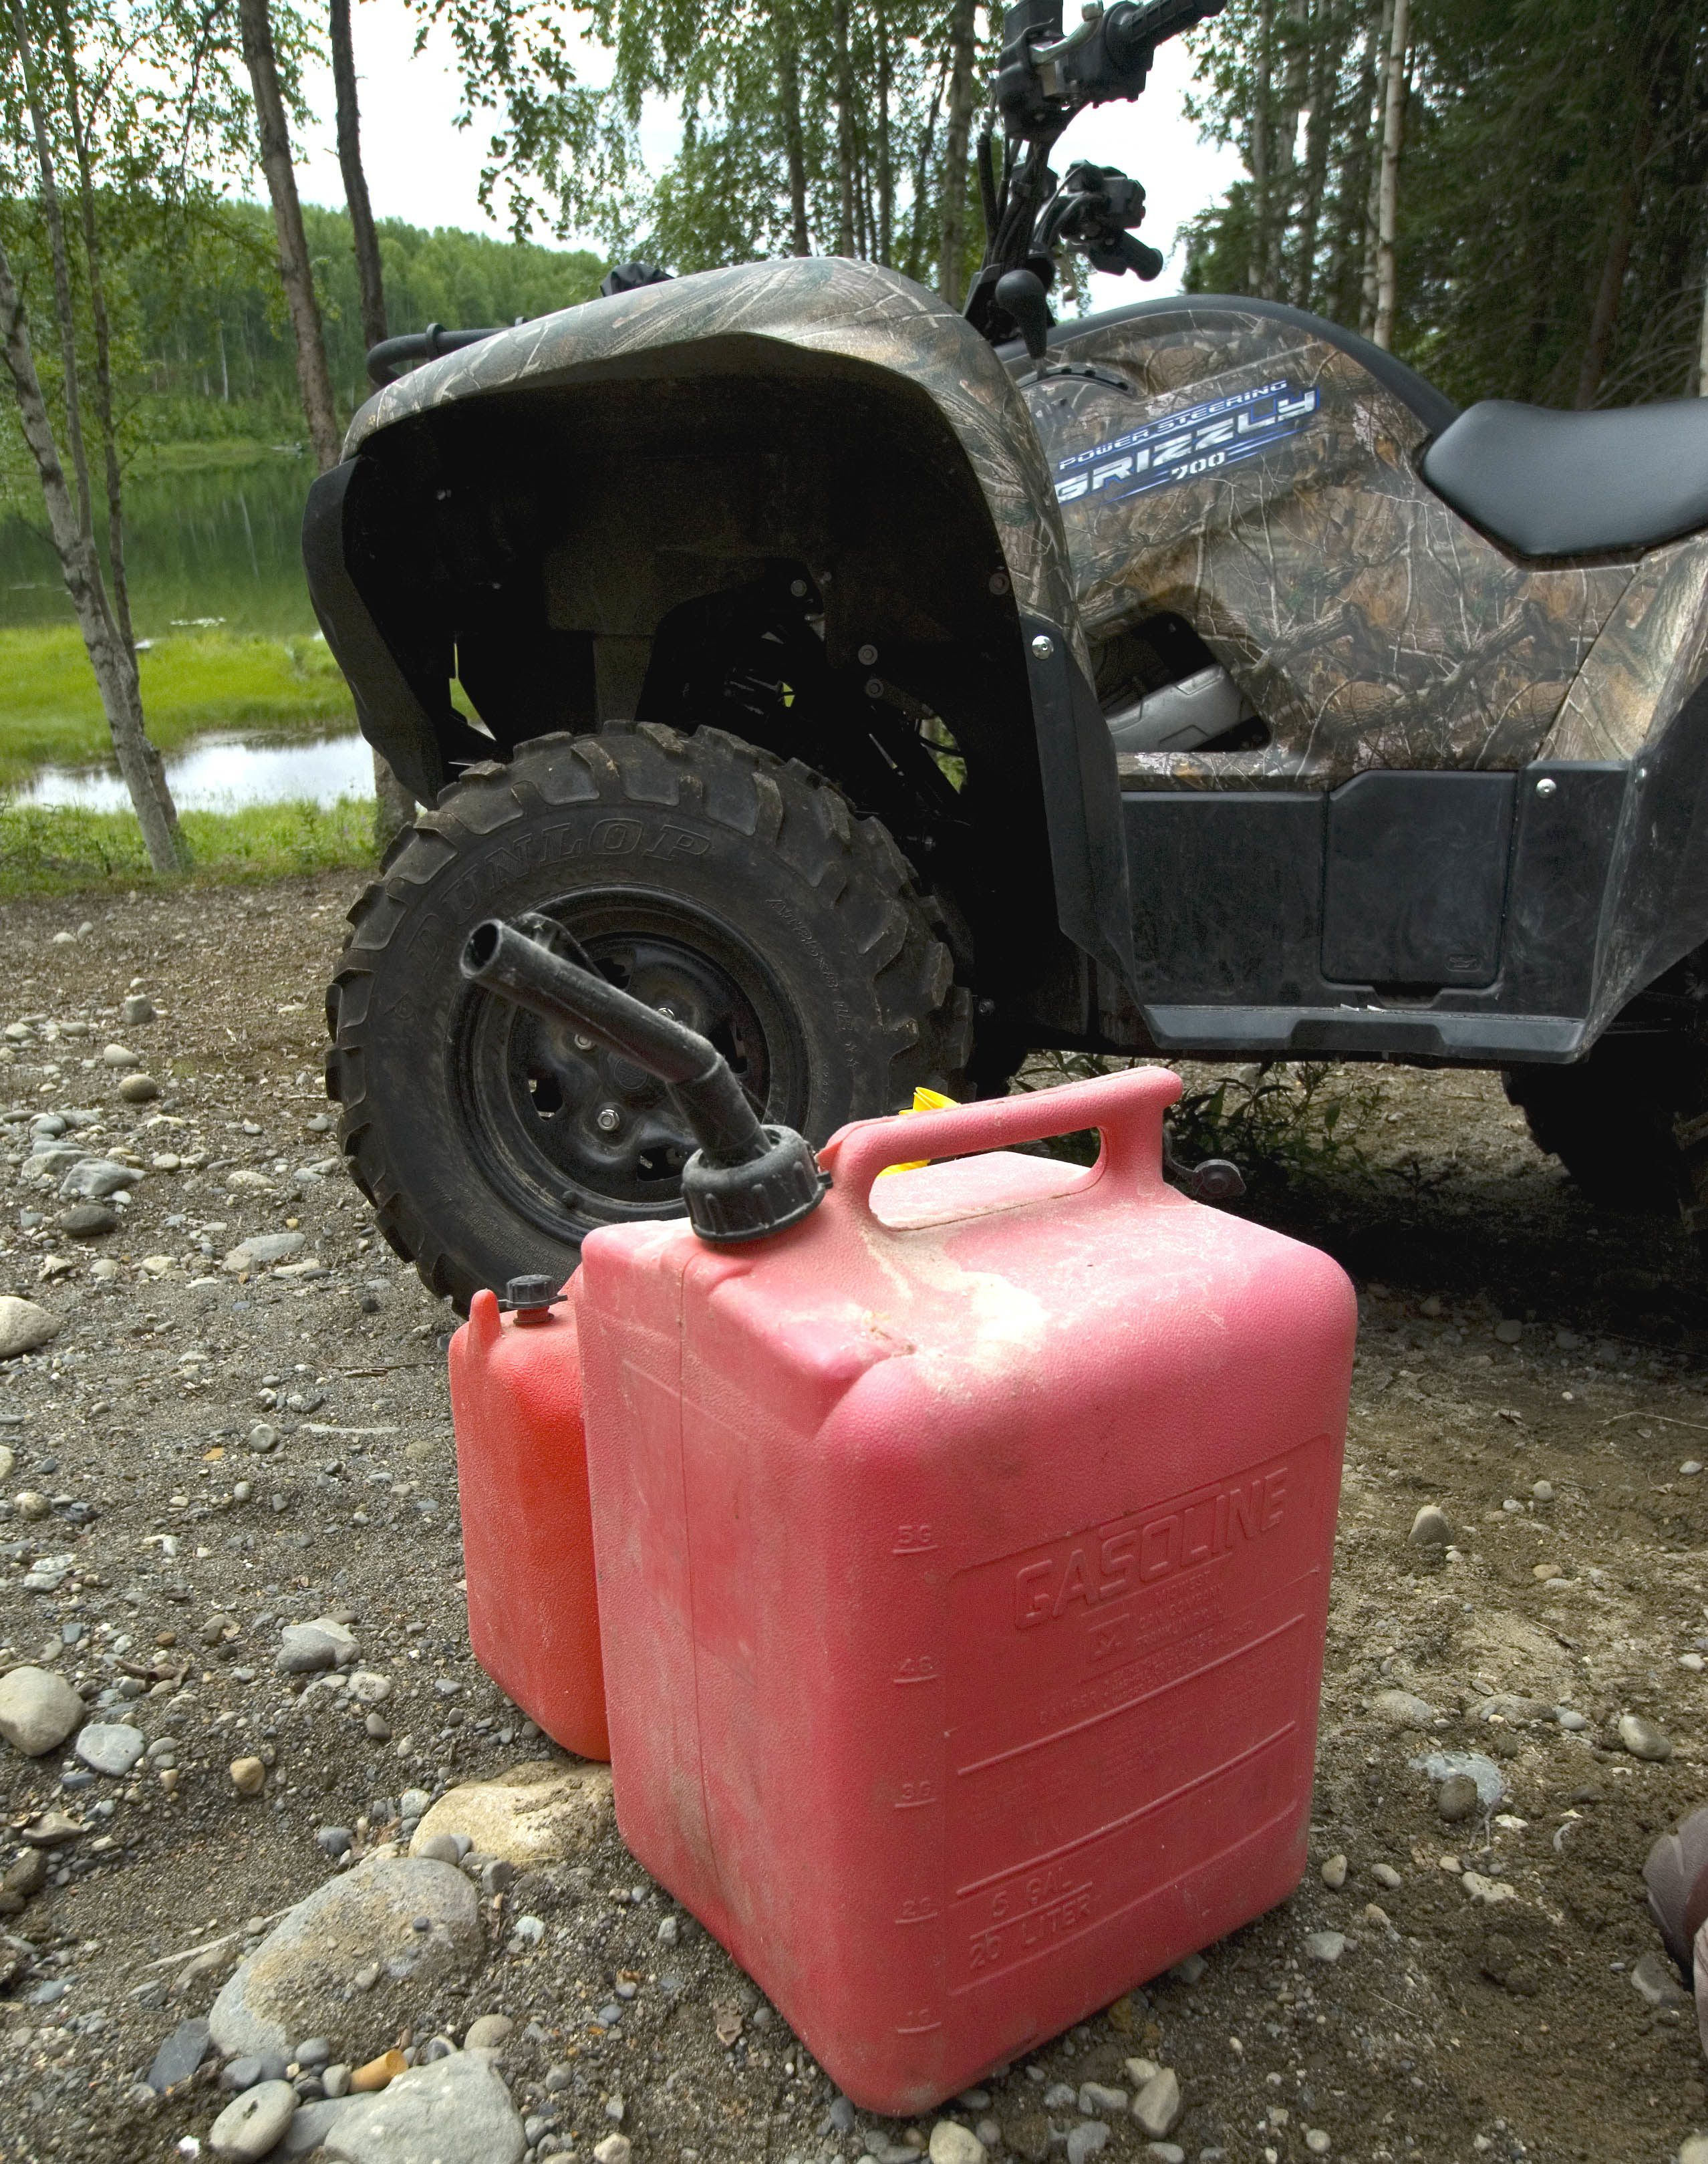 ATV Check-Up: How to Make Sure Your Quad is Running Healthy